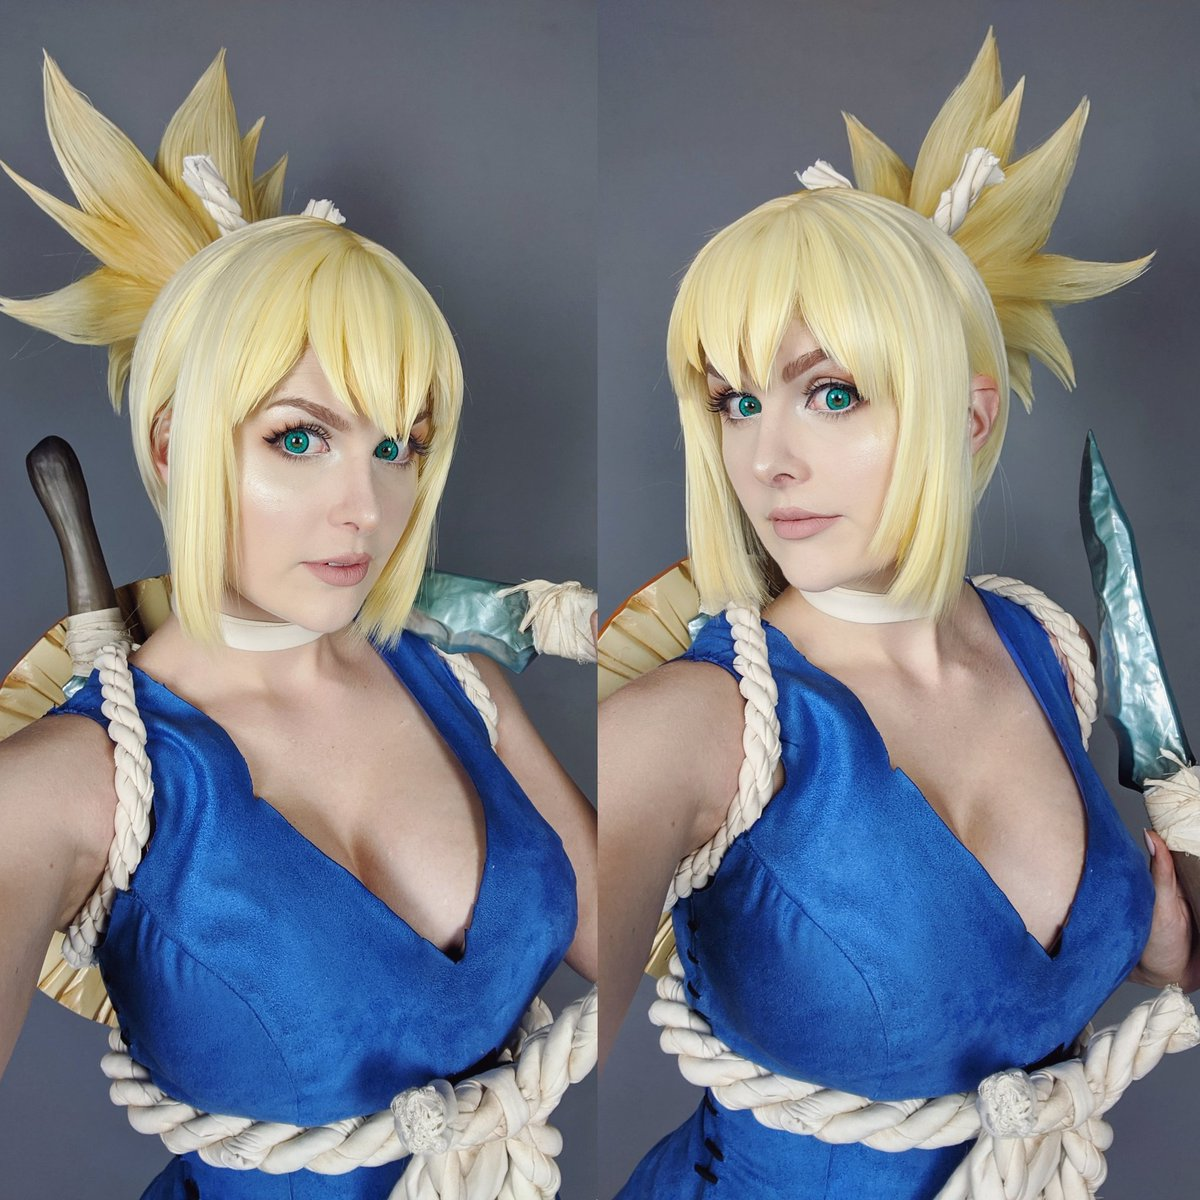 Kinpatsu Cosplay On Twitter Kohaku From Dr Stone Today We Did Some Photos For This Costume Finally We Can T Wait To Share The Final Results With You Guys The Kohaku Tutorial